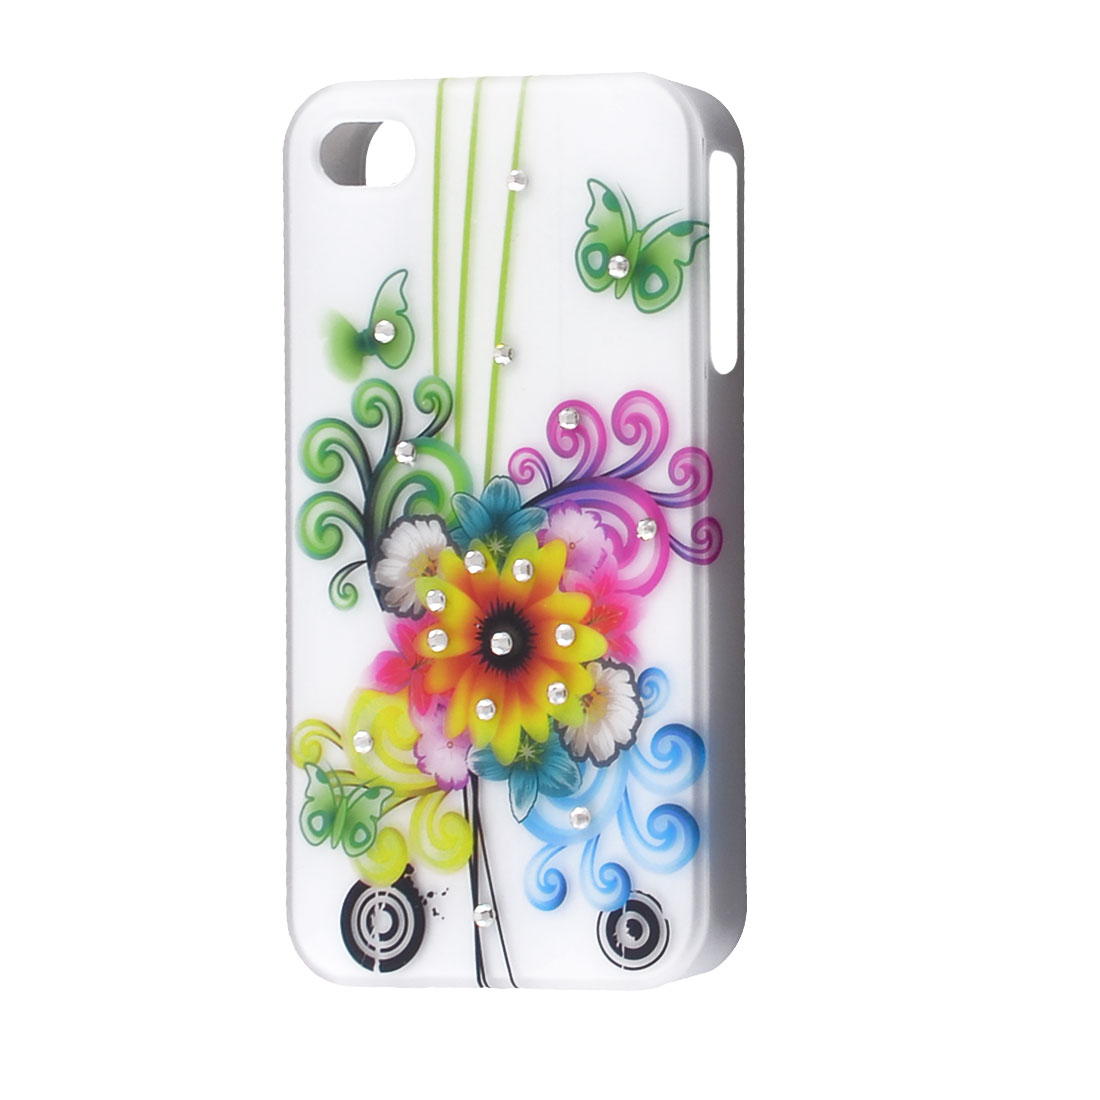 Multicolor Swirl Floral Pattern Hard Plastic Back Cover for iPhone 4 4G 4GS 4S